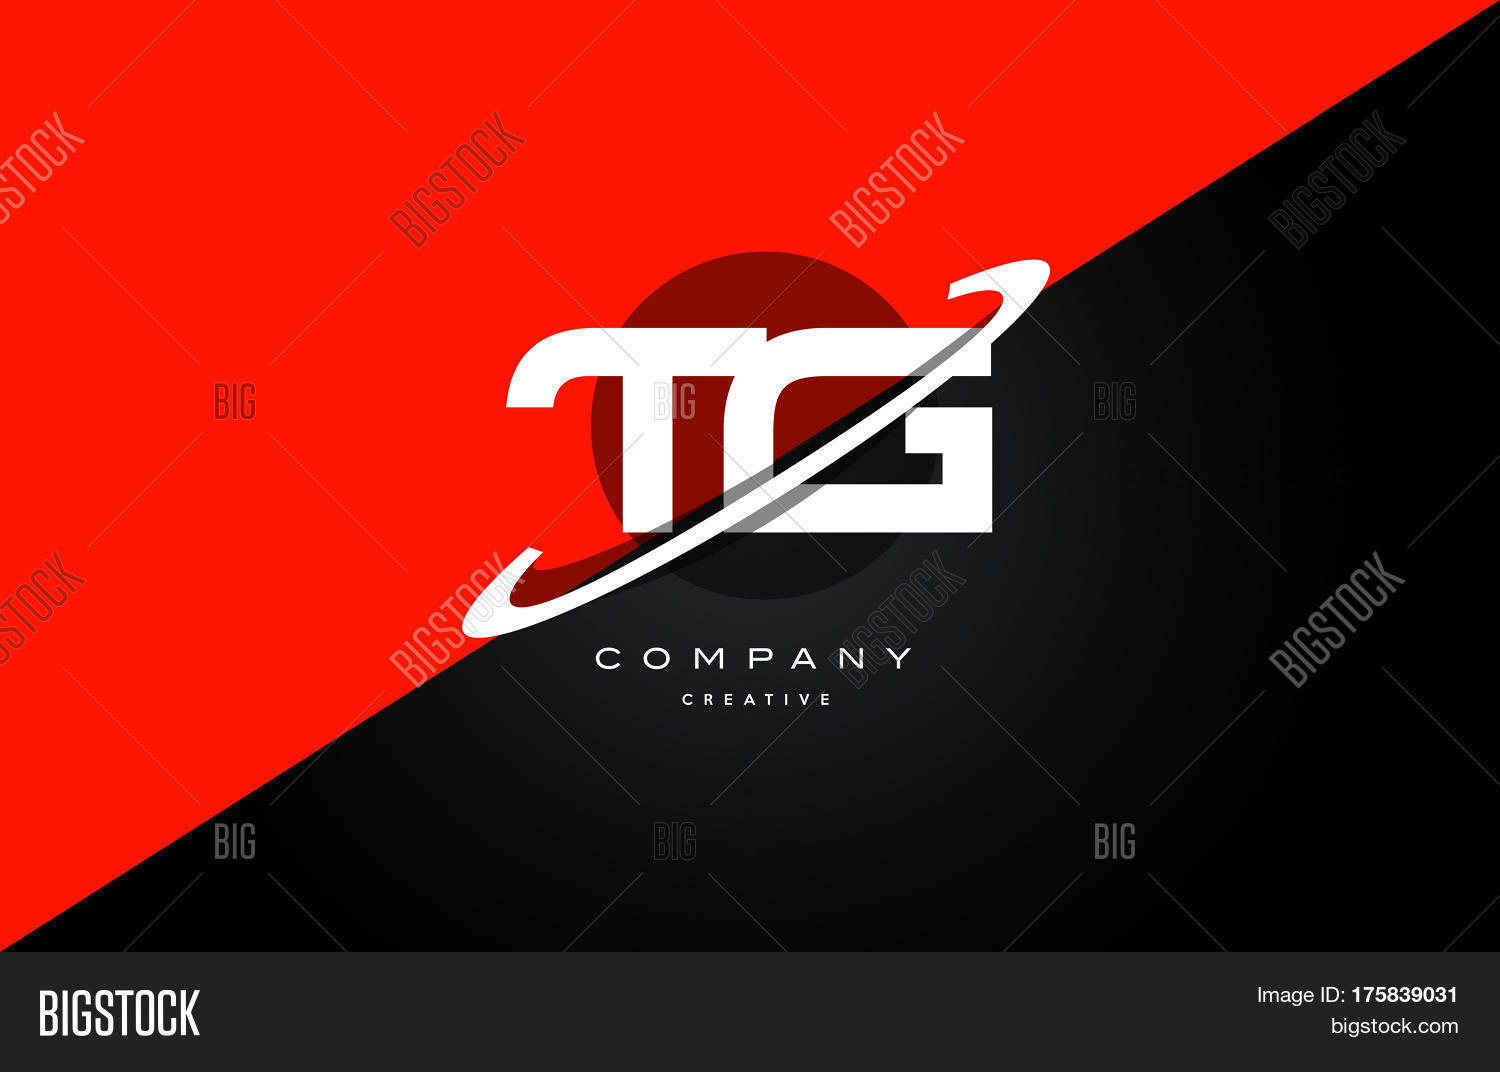 Tg T G Red Black Technology Alphabet Company Letter Logo Icon